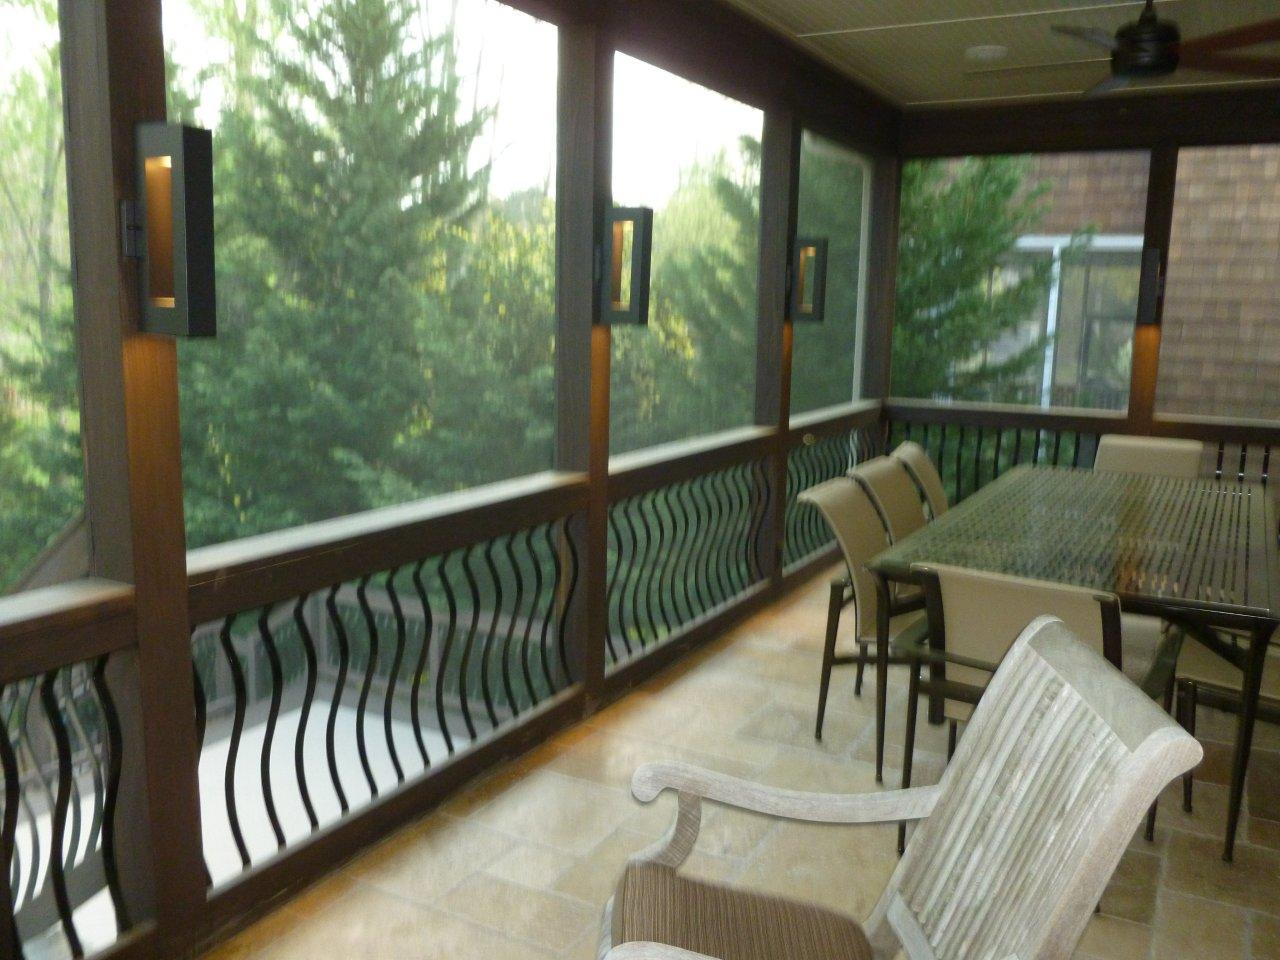 railing design options - Outdoor Screened Porches